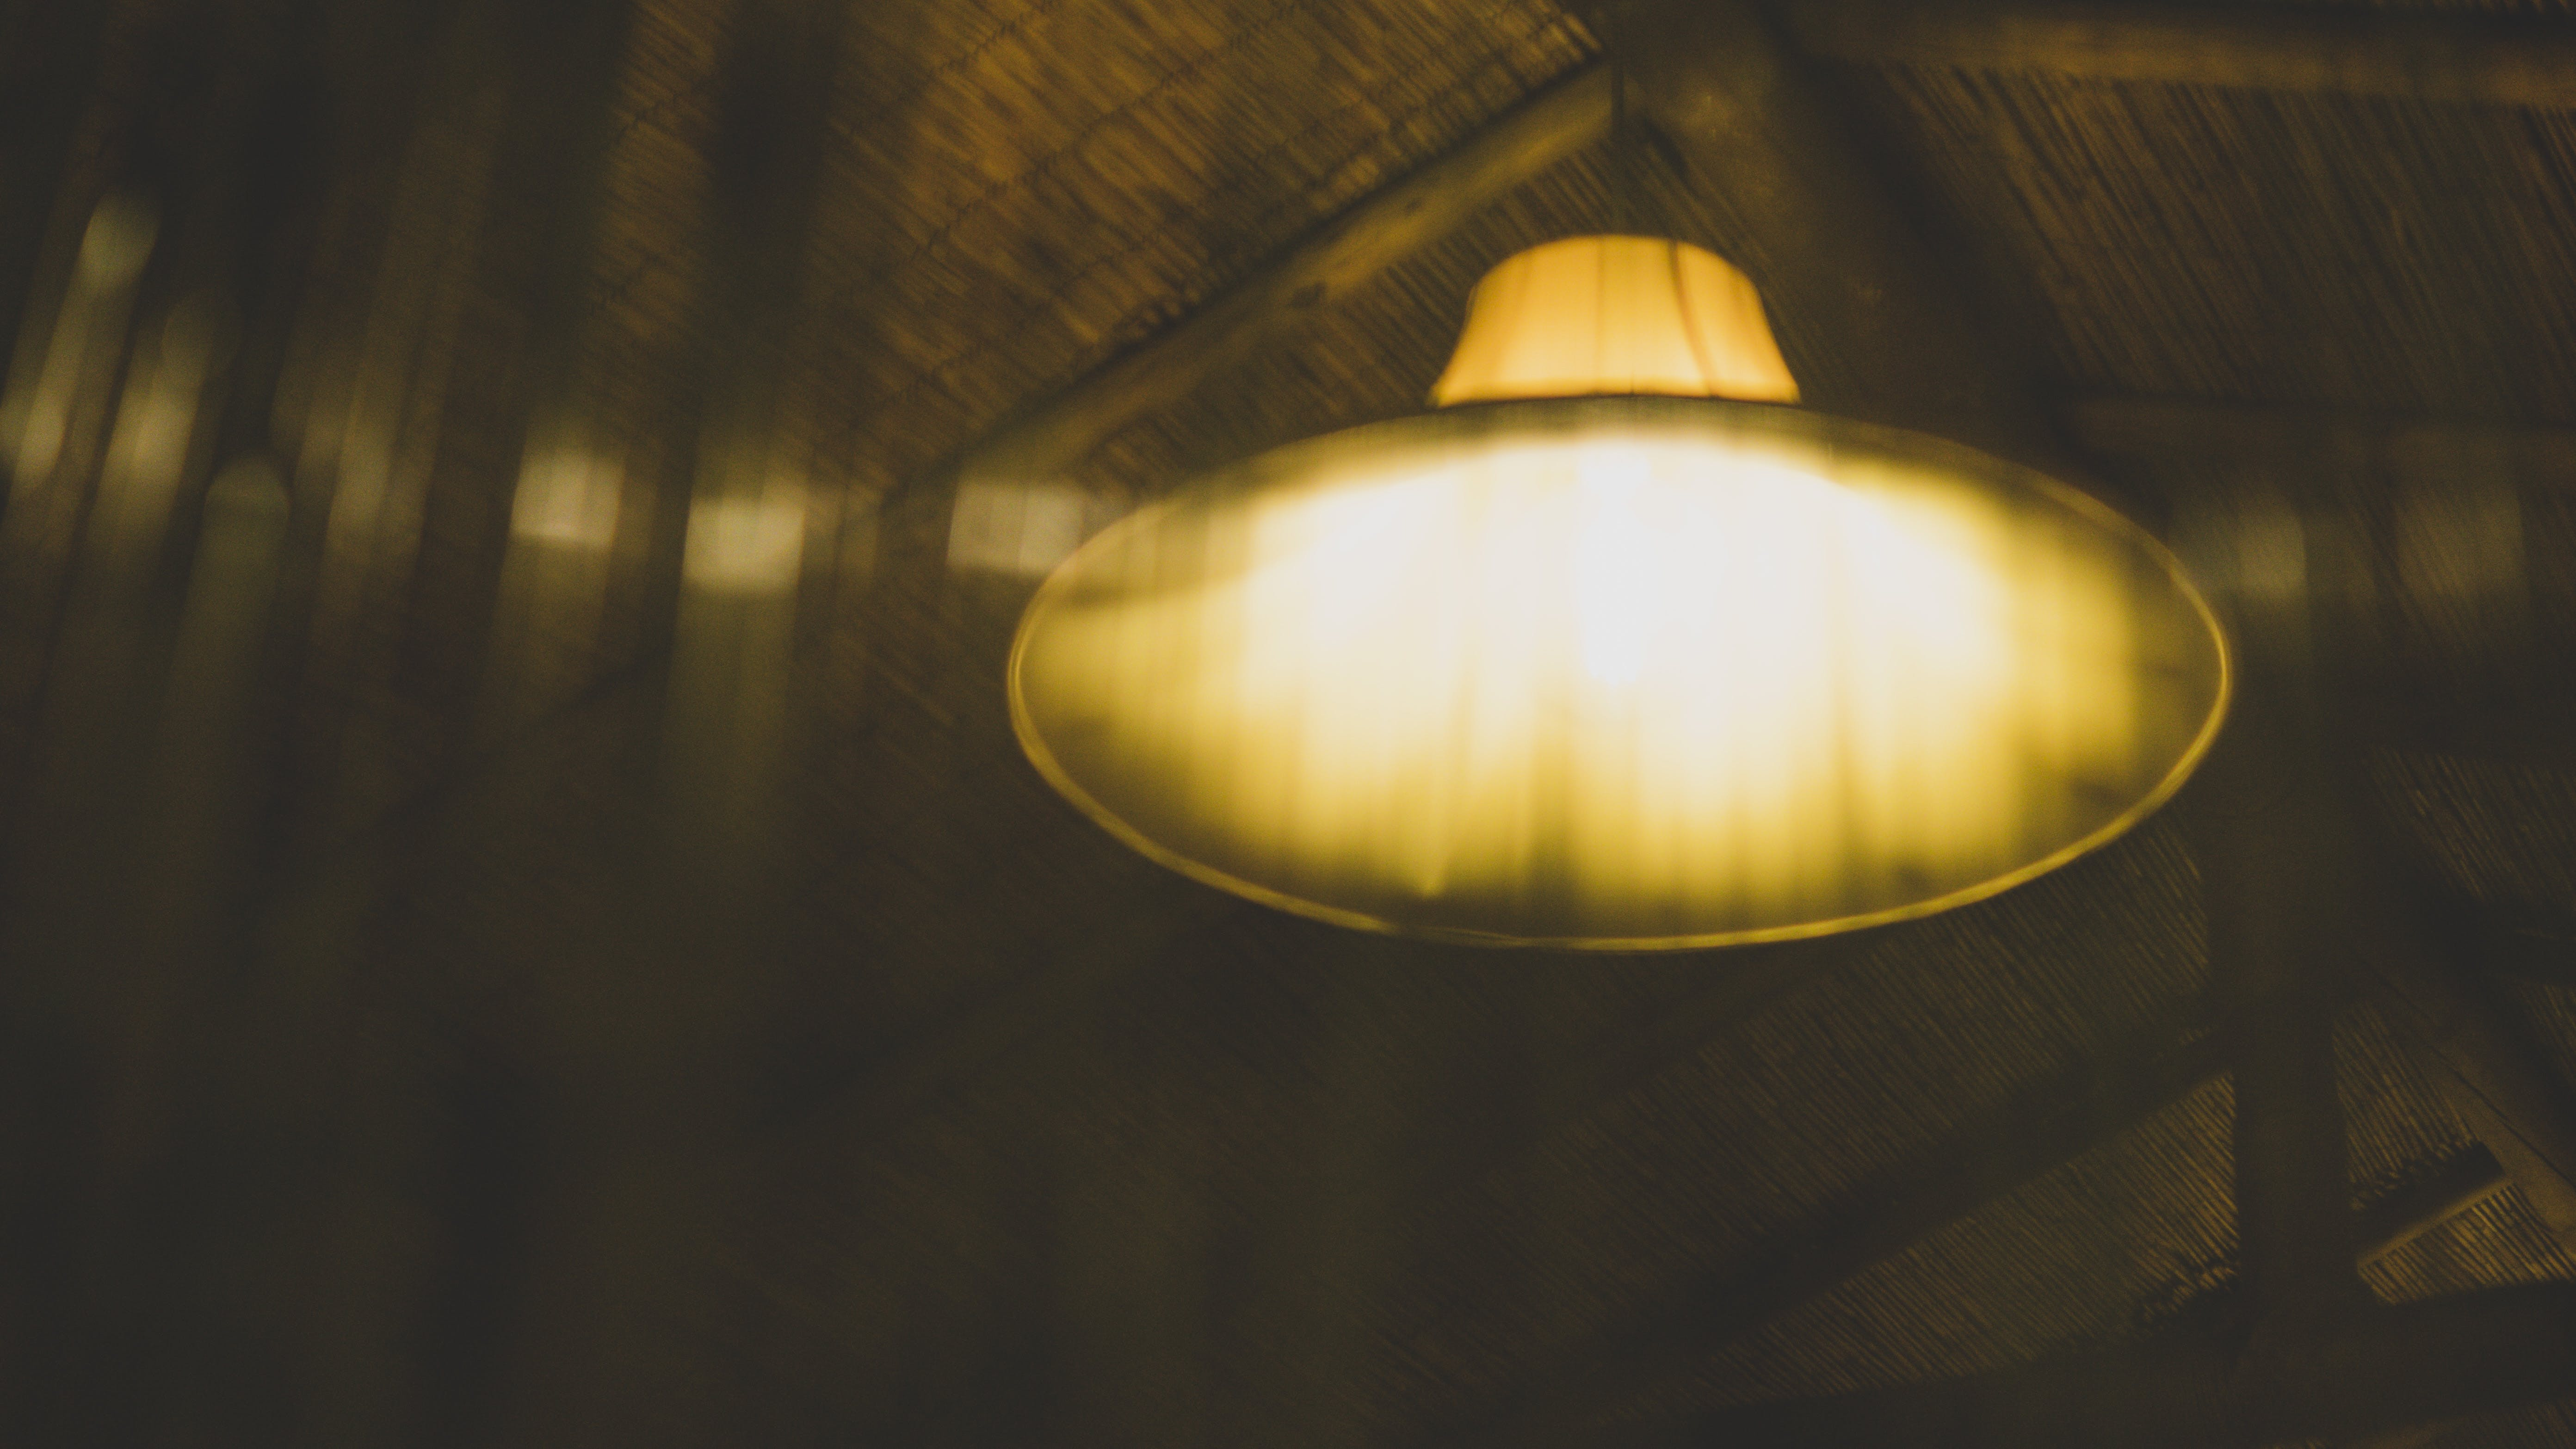 Free stock photo of light, lamp, electricity, illuminated